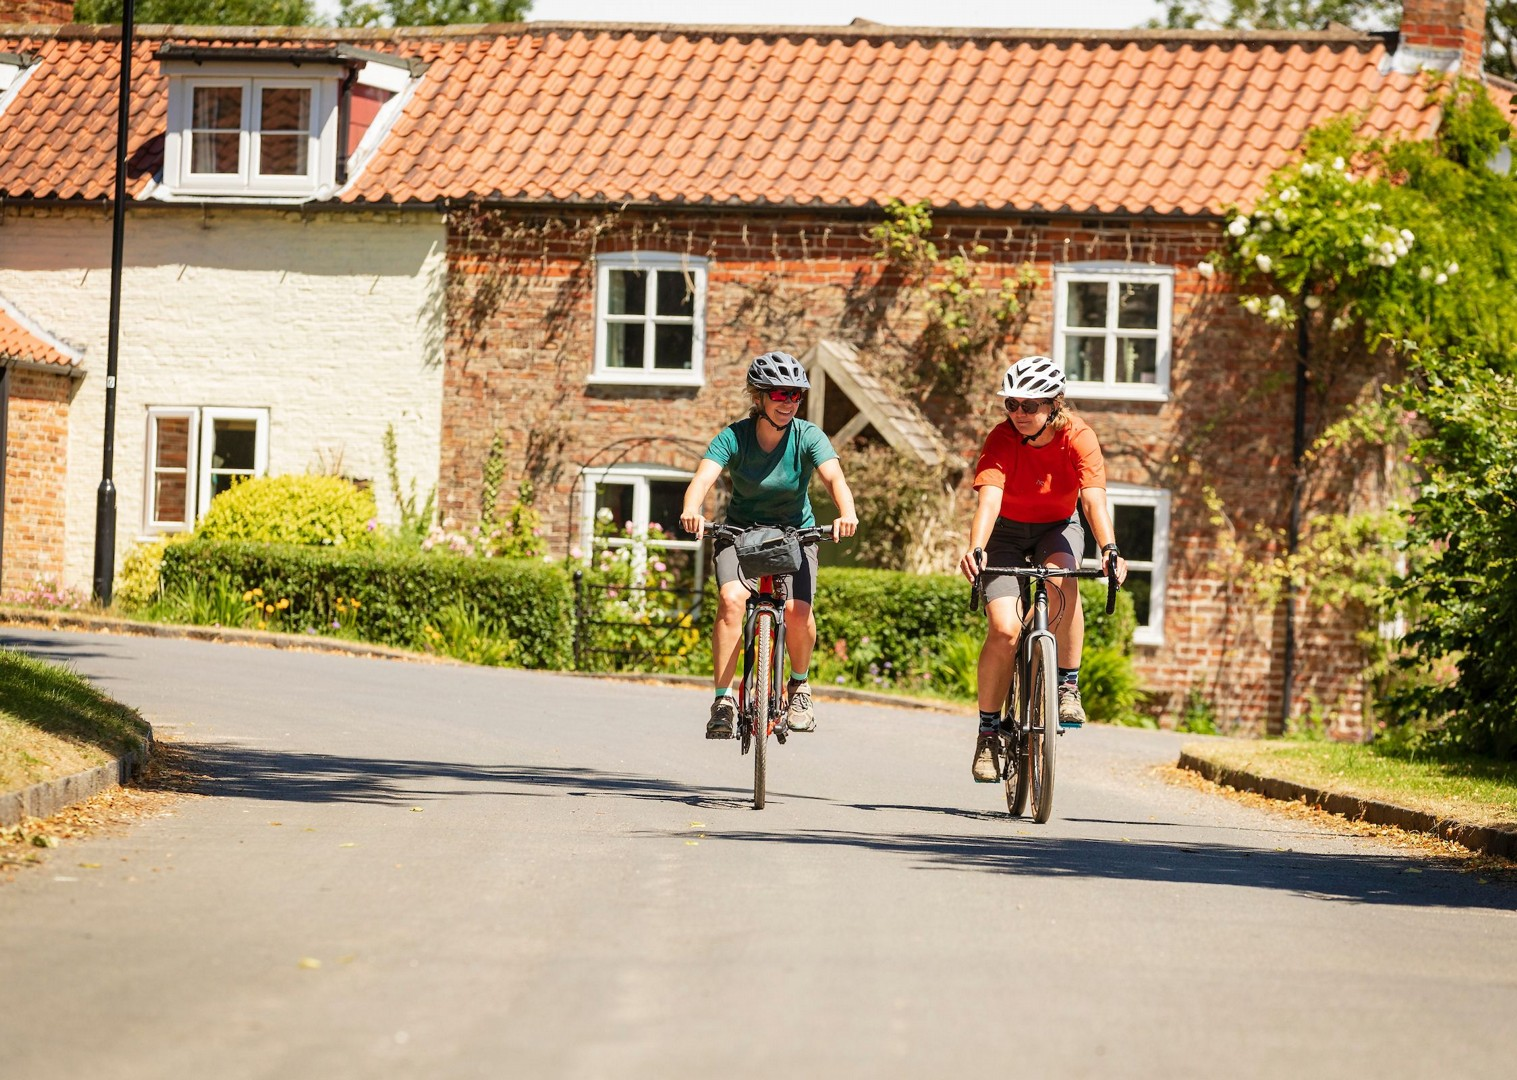 local-villages-of-yorkshire-moors-leisure-cycling.jpg - UK - Yorkshire Wolds - 5 Days Cycling - Self-Guided Leisure Cycling Holiday - Leisure Cycling